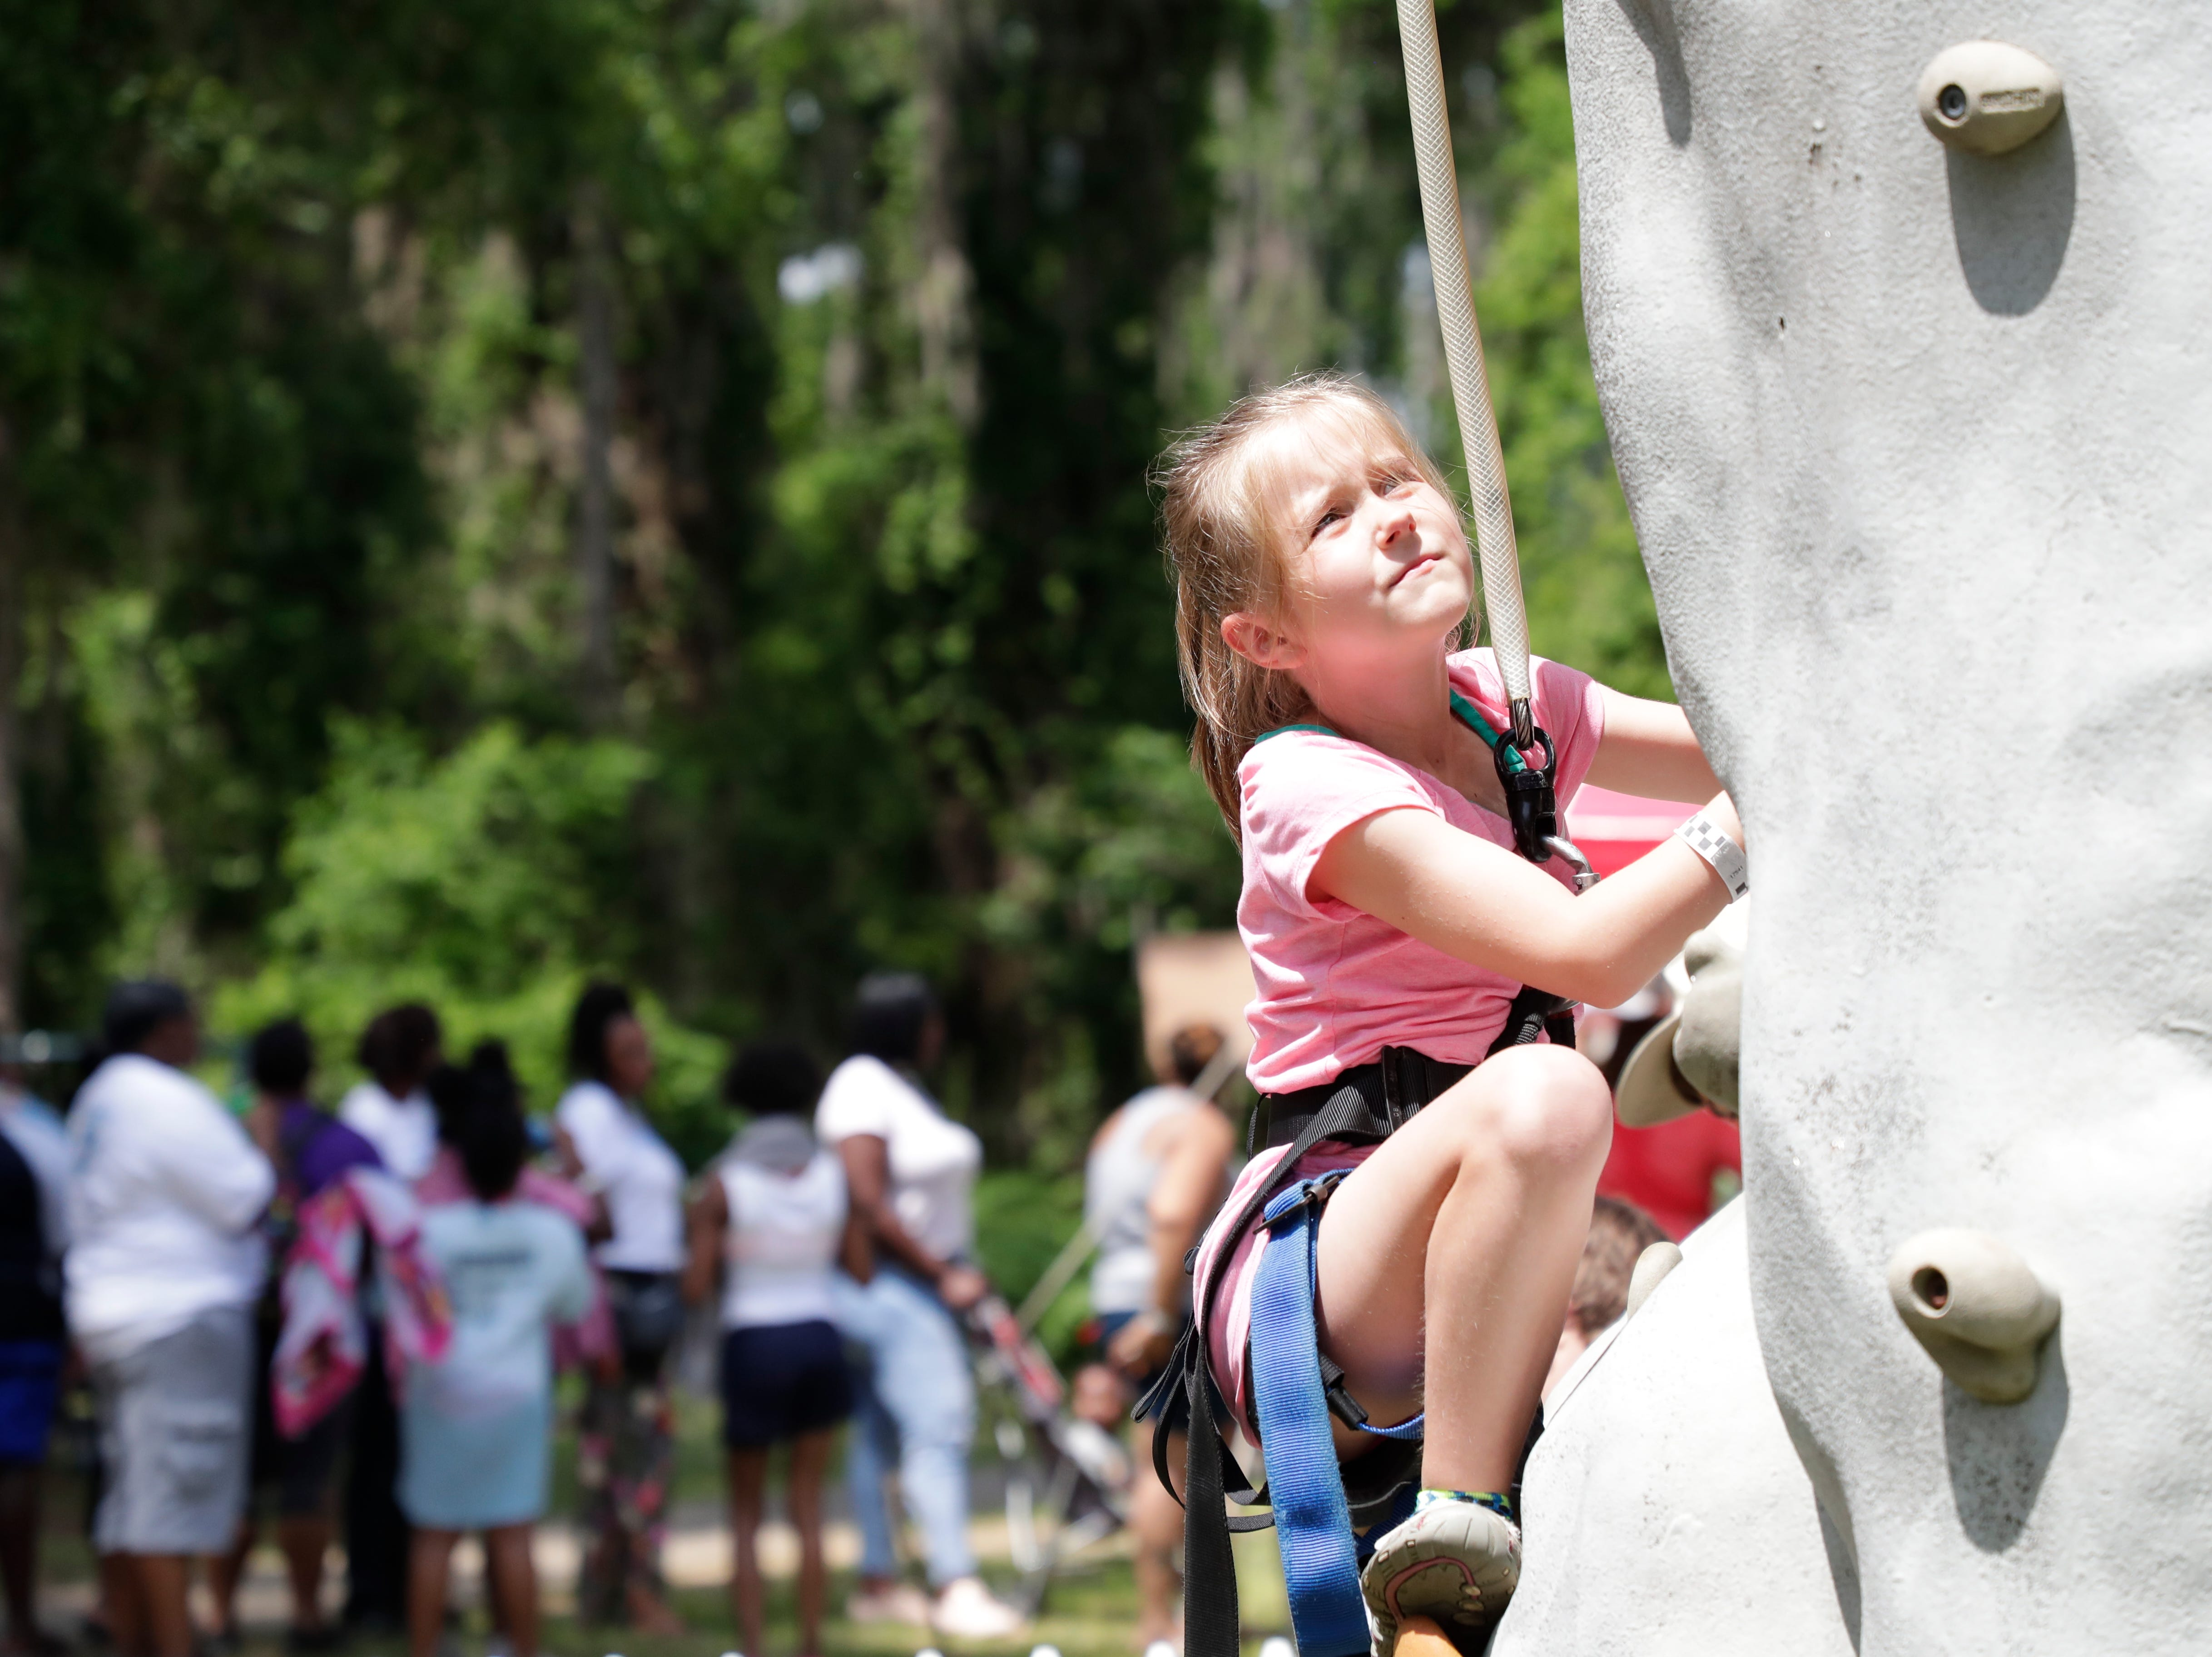 Chris Barfield, 7, climbs the rock wall during SportsAbility, a program with the Florida Disabled Outdoors Association, at Maclay Garden State Park Saturday,  April 13, 2019.